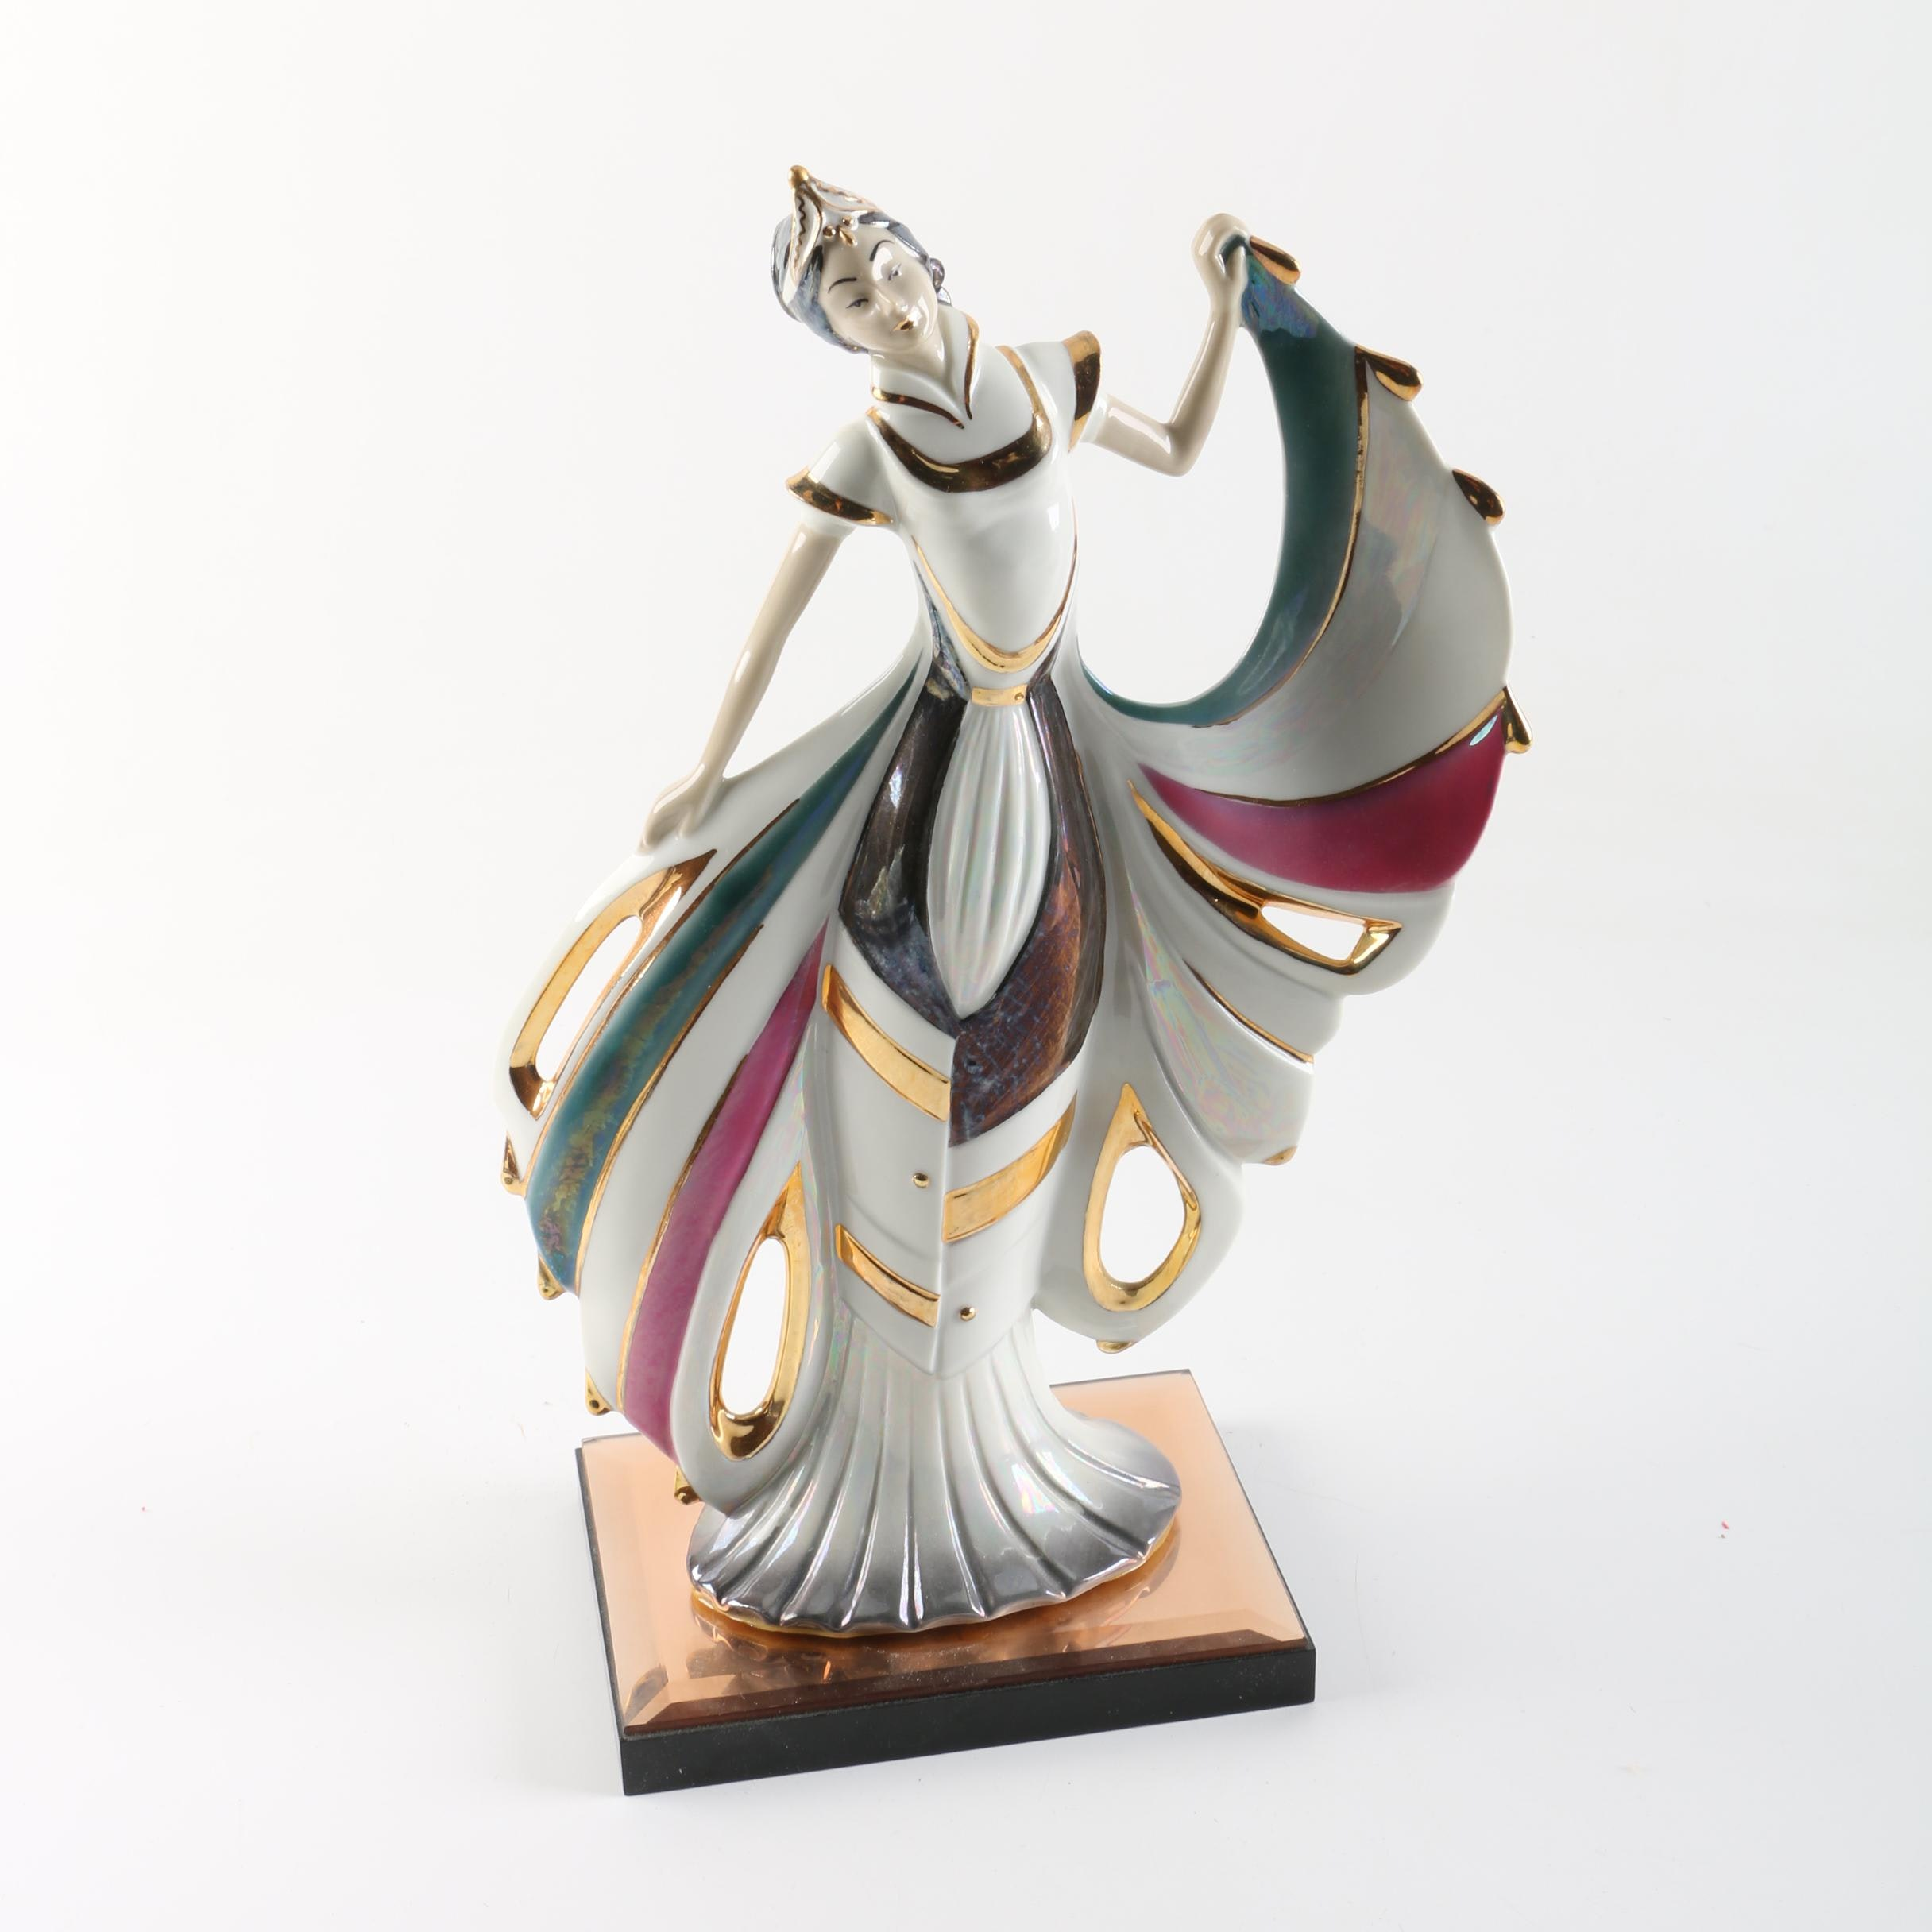 Art Deco Style Porcelain Figurine of Woman